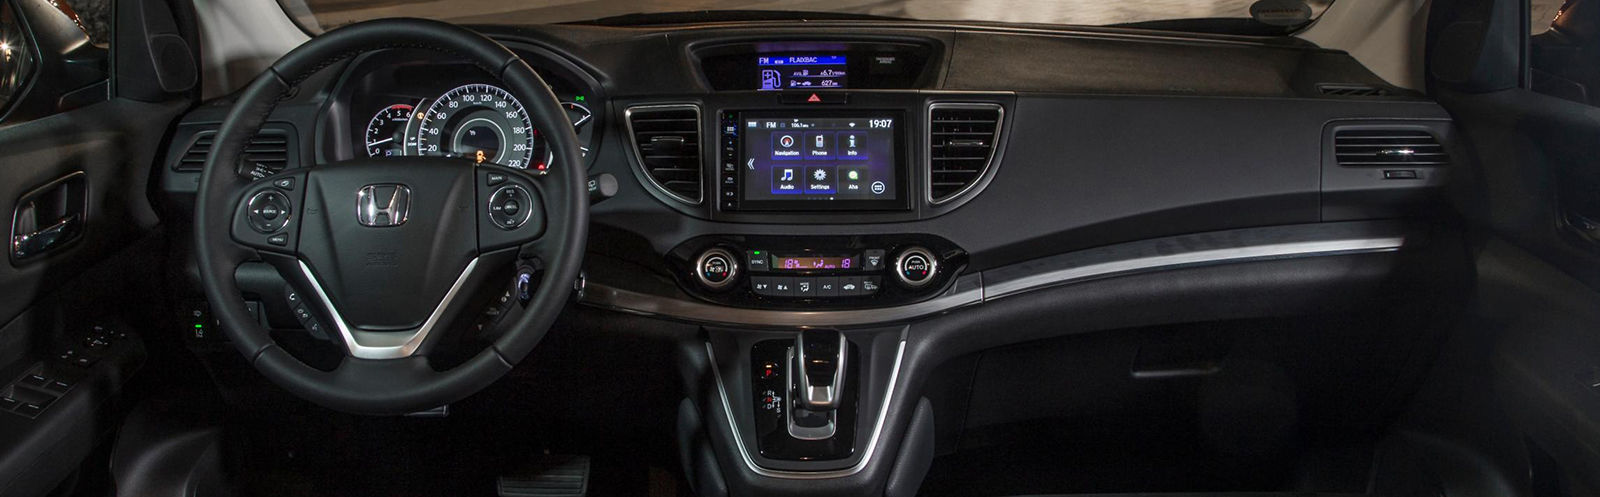 Honda cr v sizes and dimensions guide carwow for Honda crv size